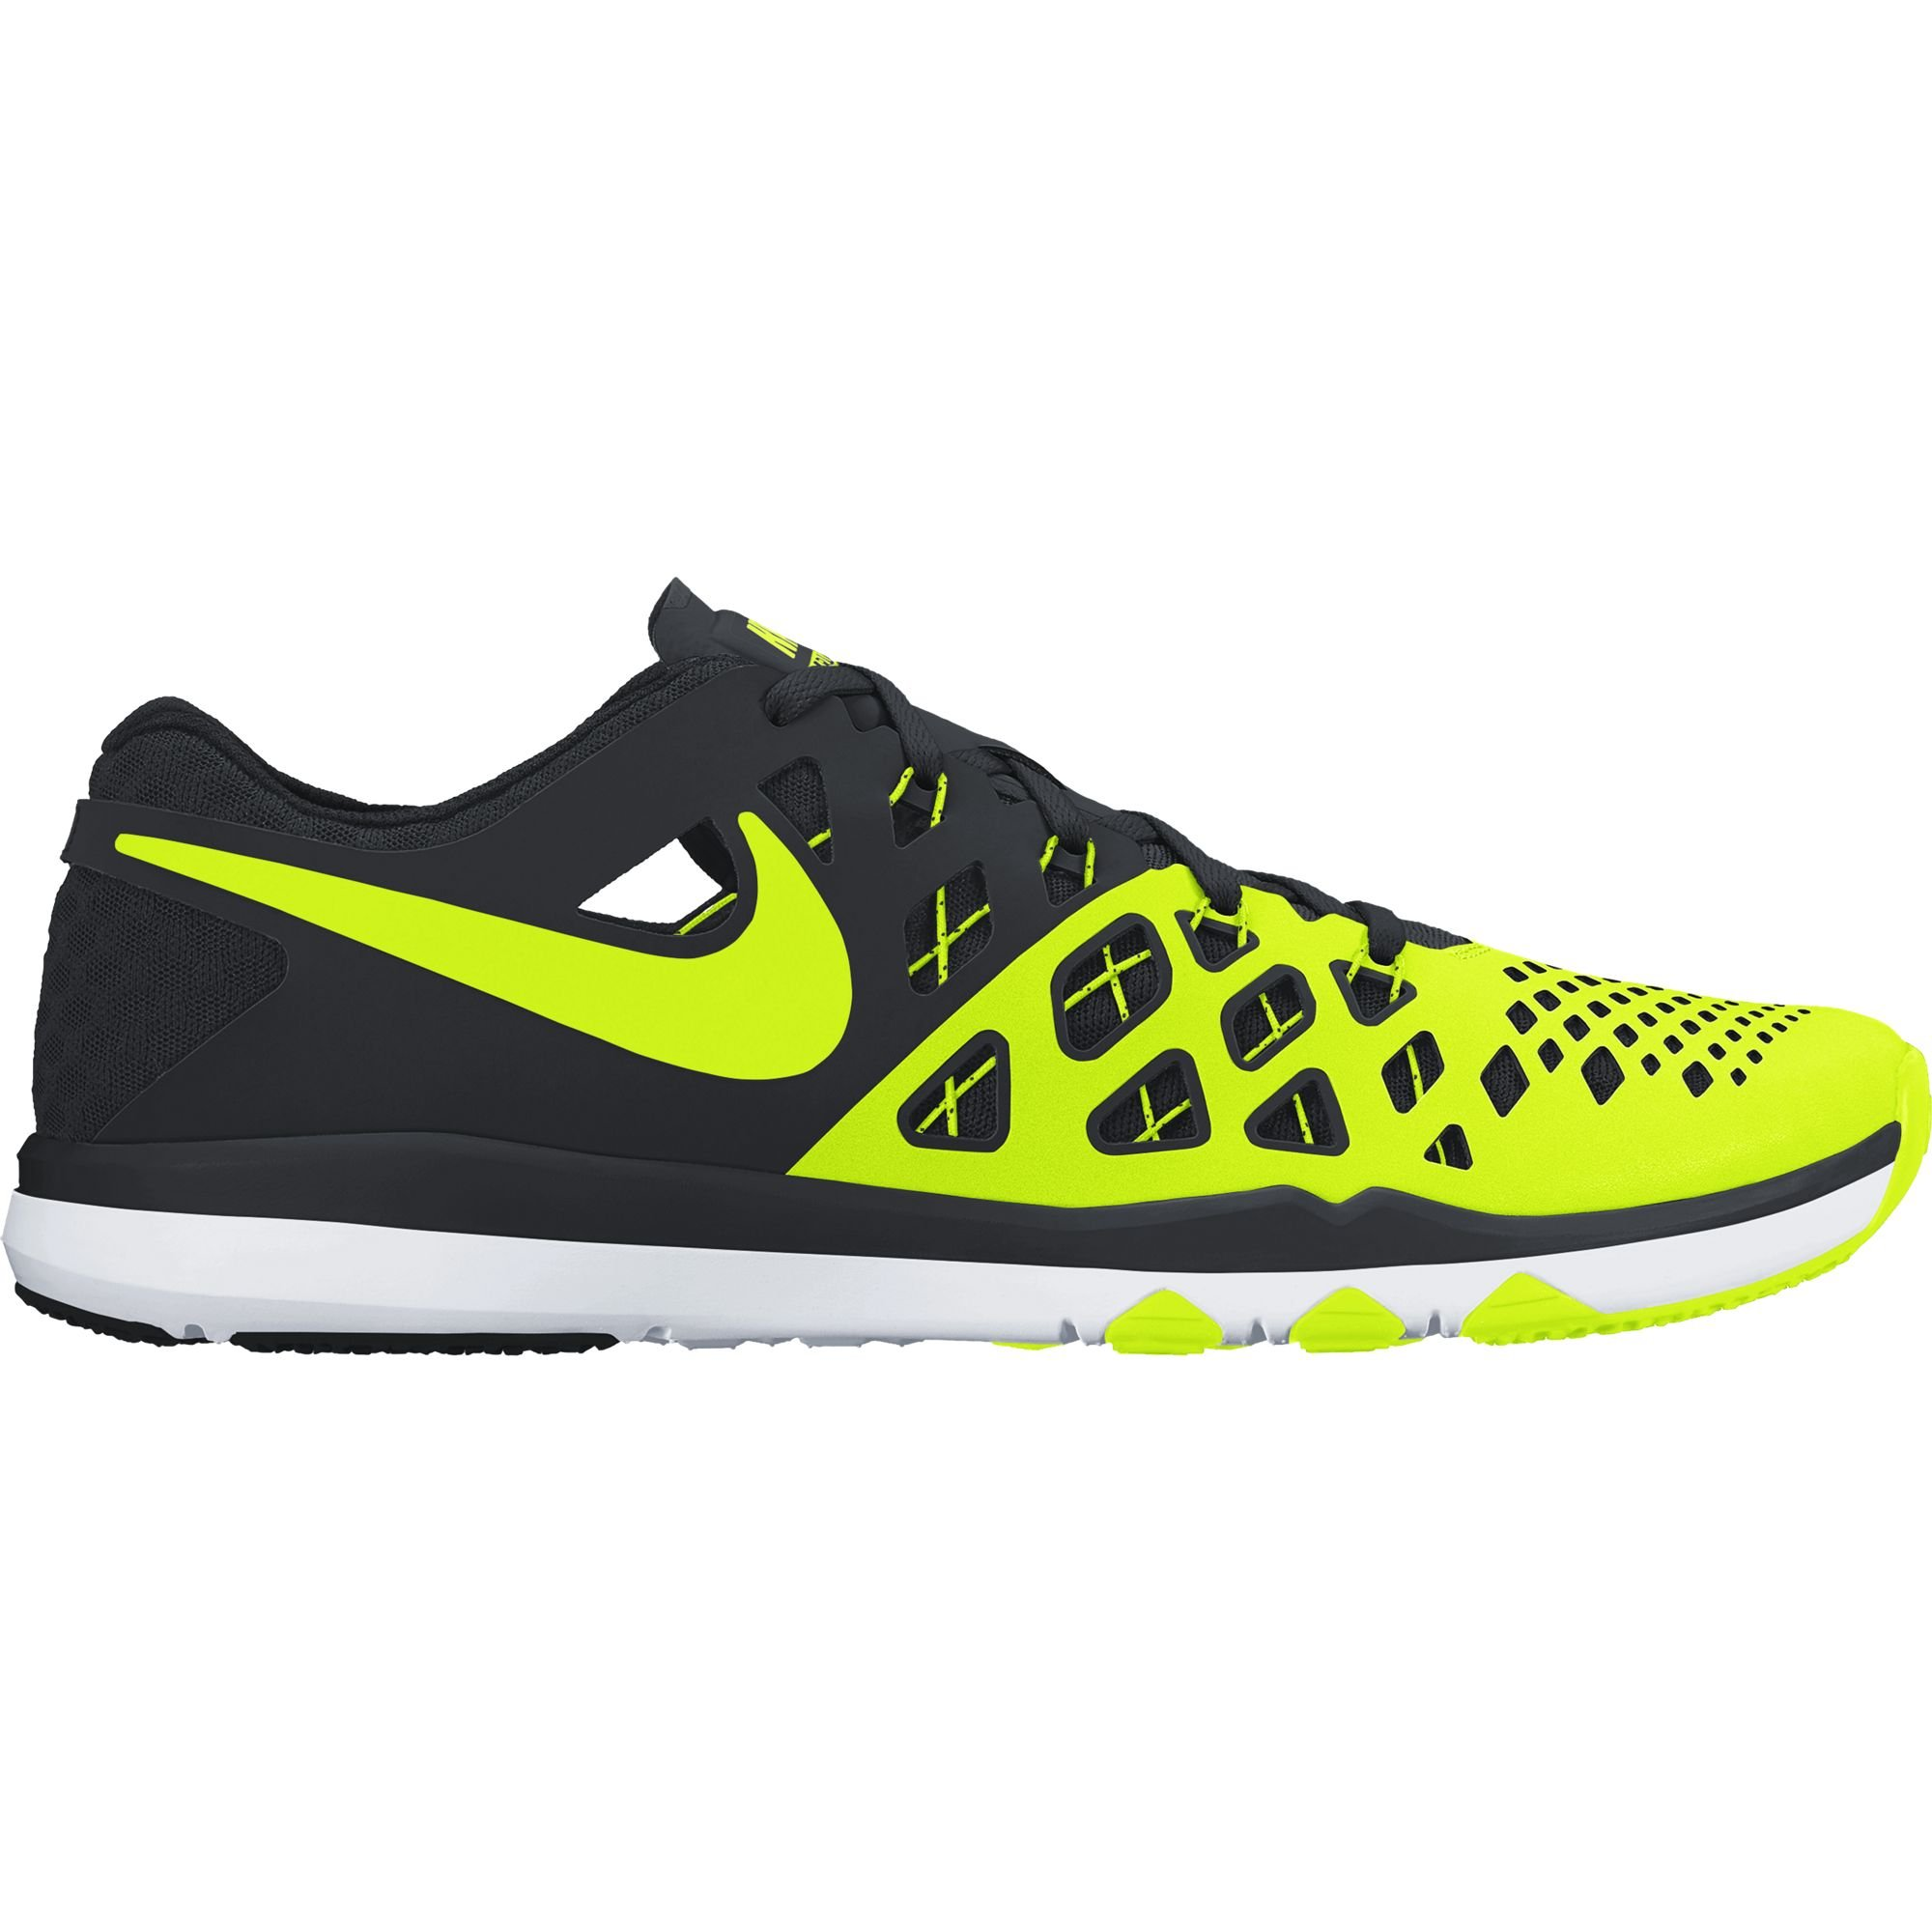 Galleon - NIKE Men s Train Speed 4 Training Shoe Volt Black Size 11.5 M US b4ced218b